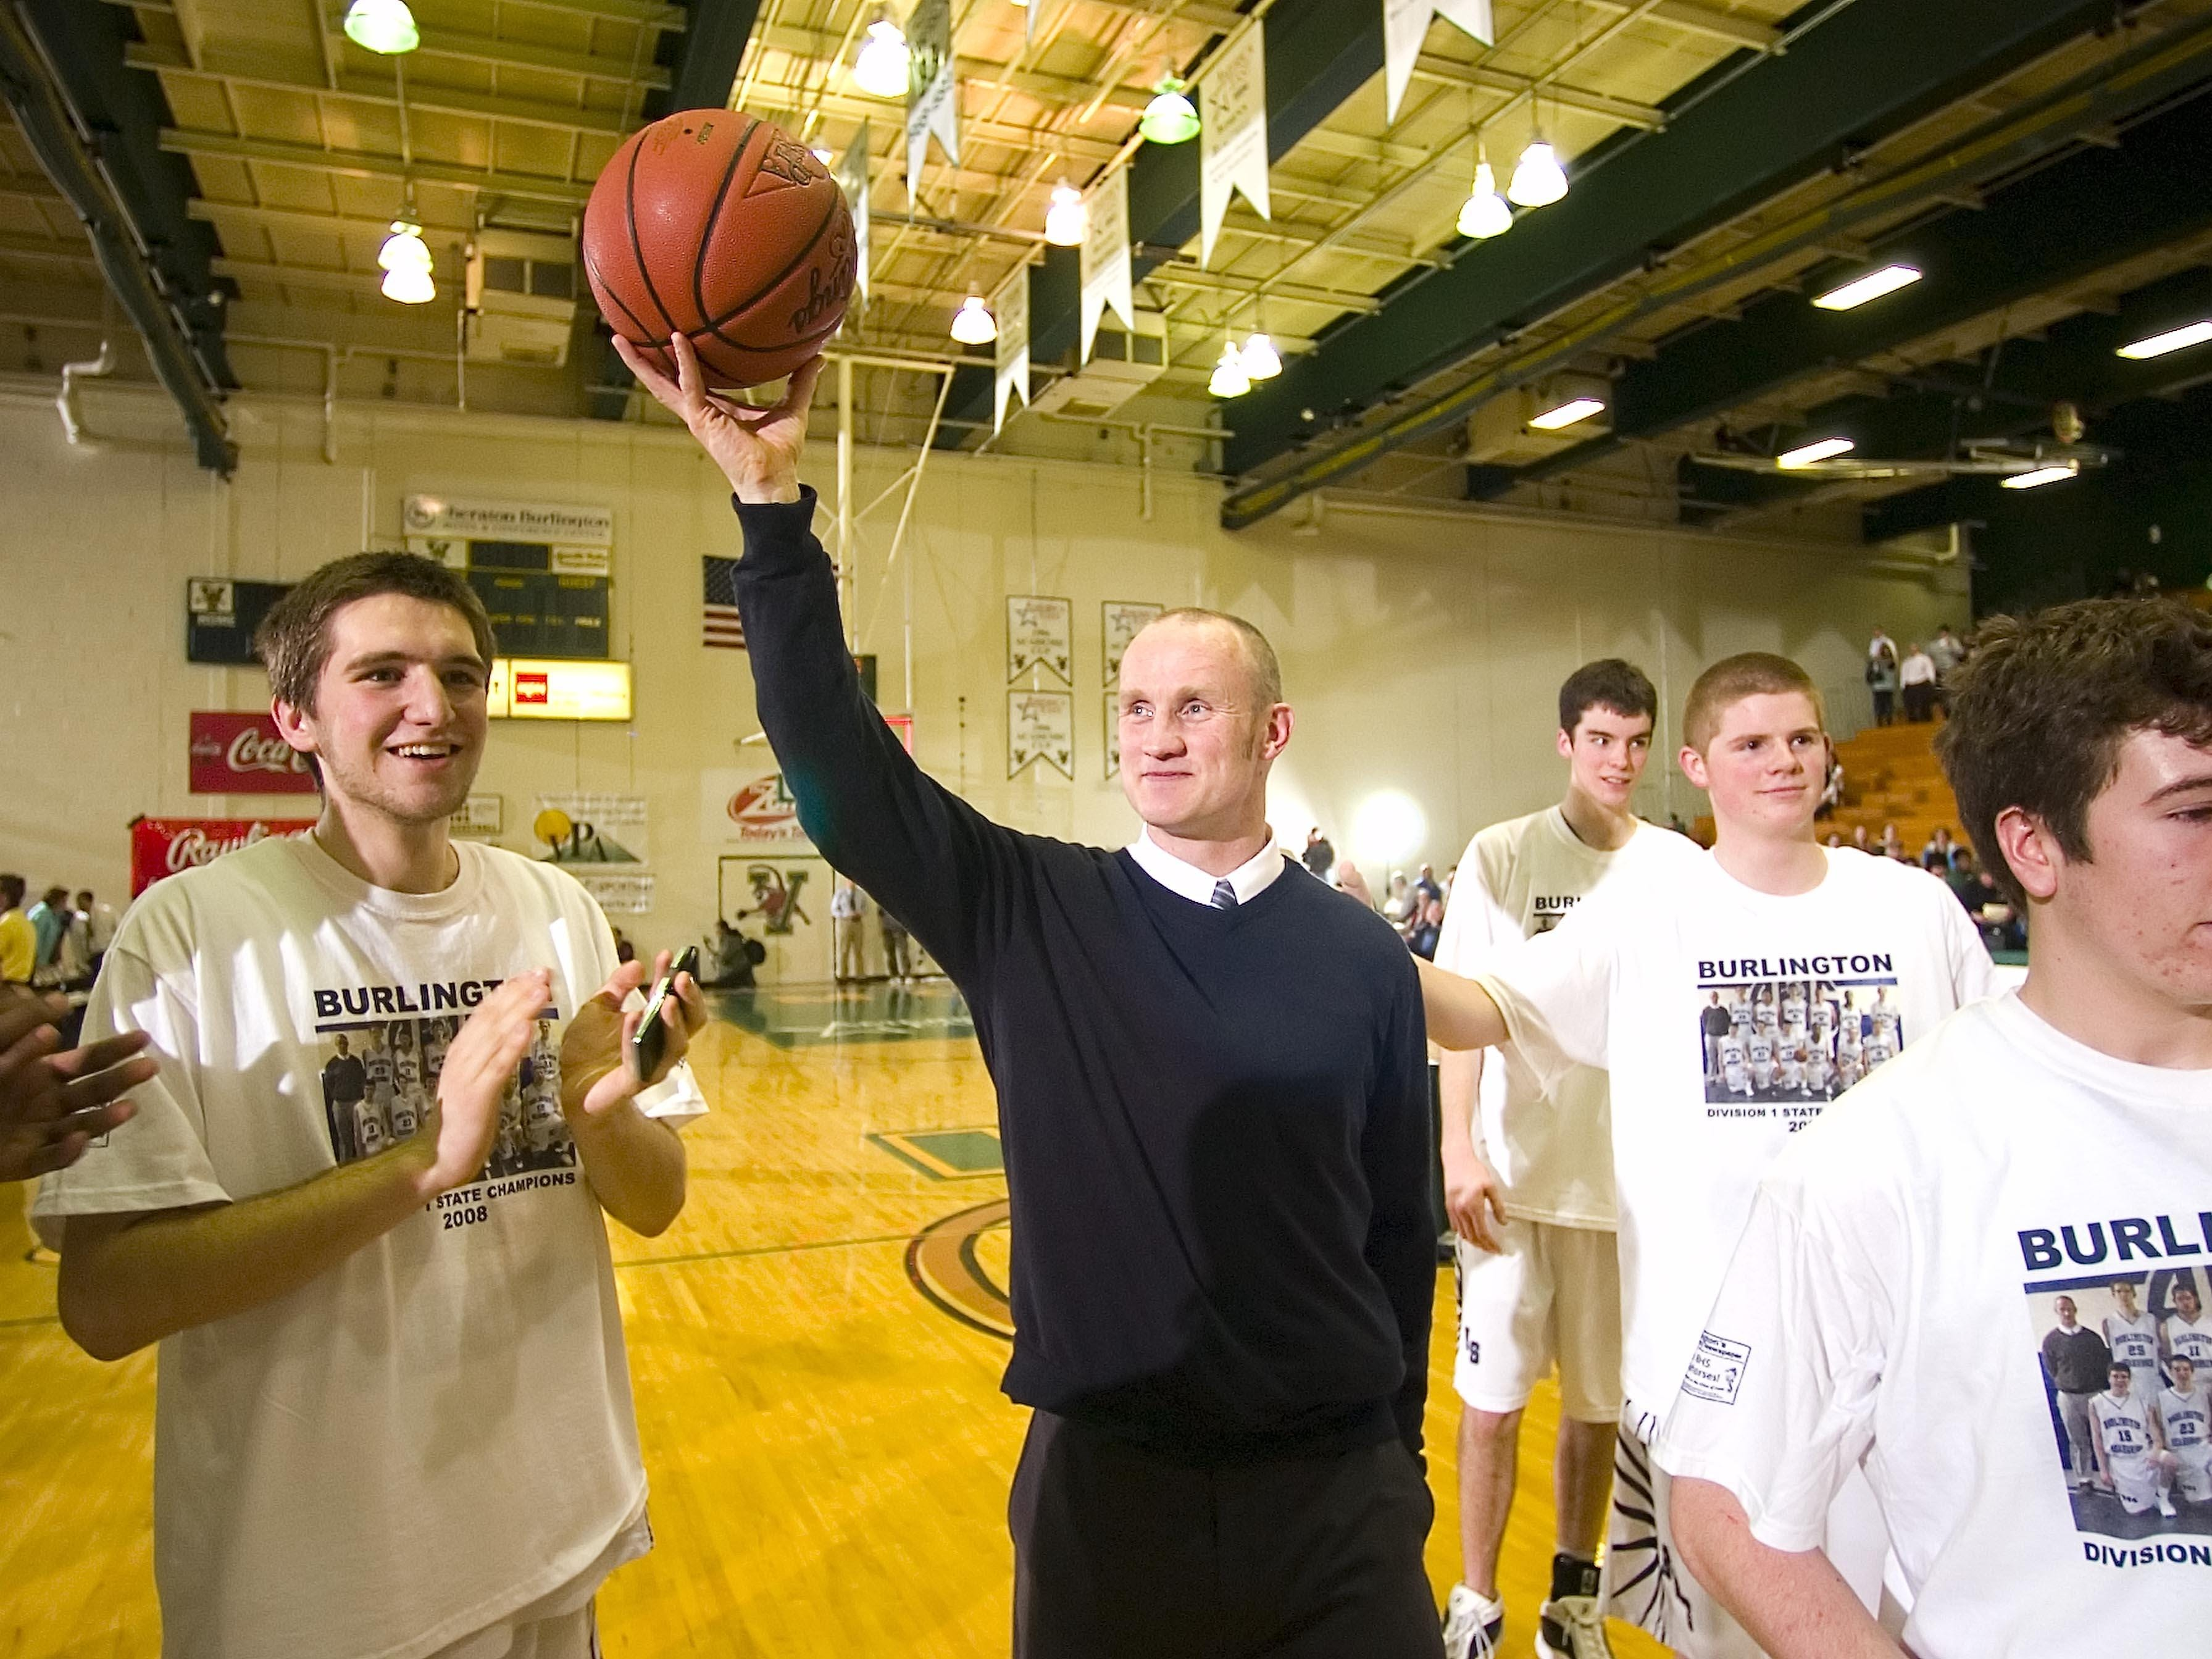 Burlington High School boys basketball coach Mat Johnson celebrates his team's undefeated season with a win over Rice Memorial High School in the Division I Boys State Championship at the University of Vermont's Patrick Gymnasium on Monday March 3, 2008. (GLENN RUSSELL, Free Press)